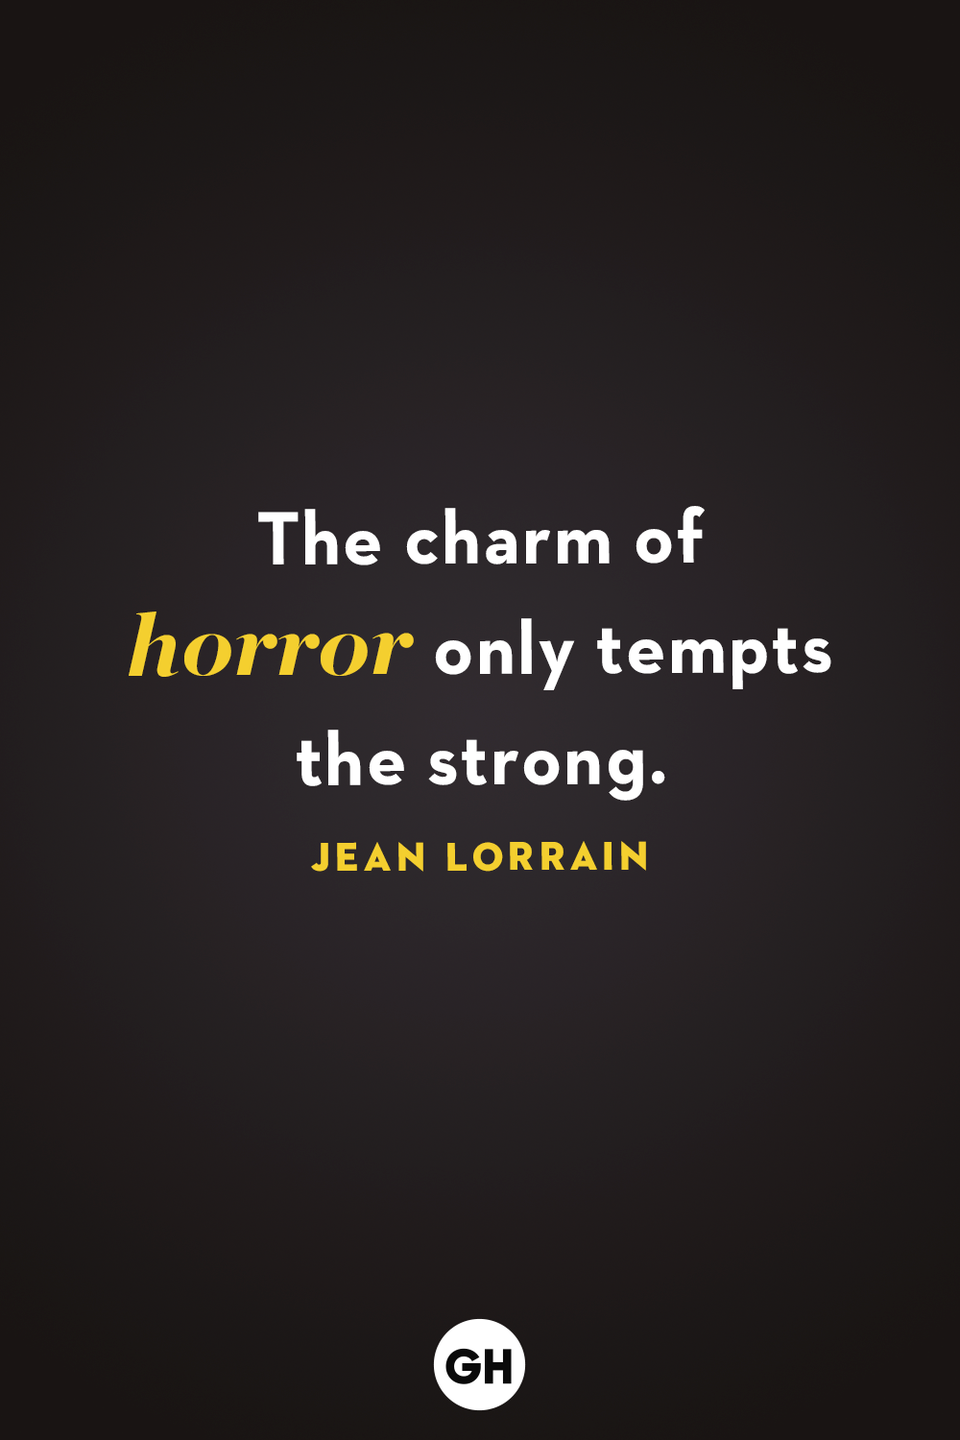 <p>The charm of horror only tempts the strong. </p>